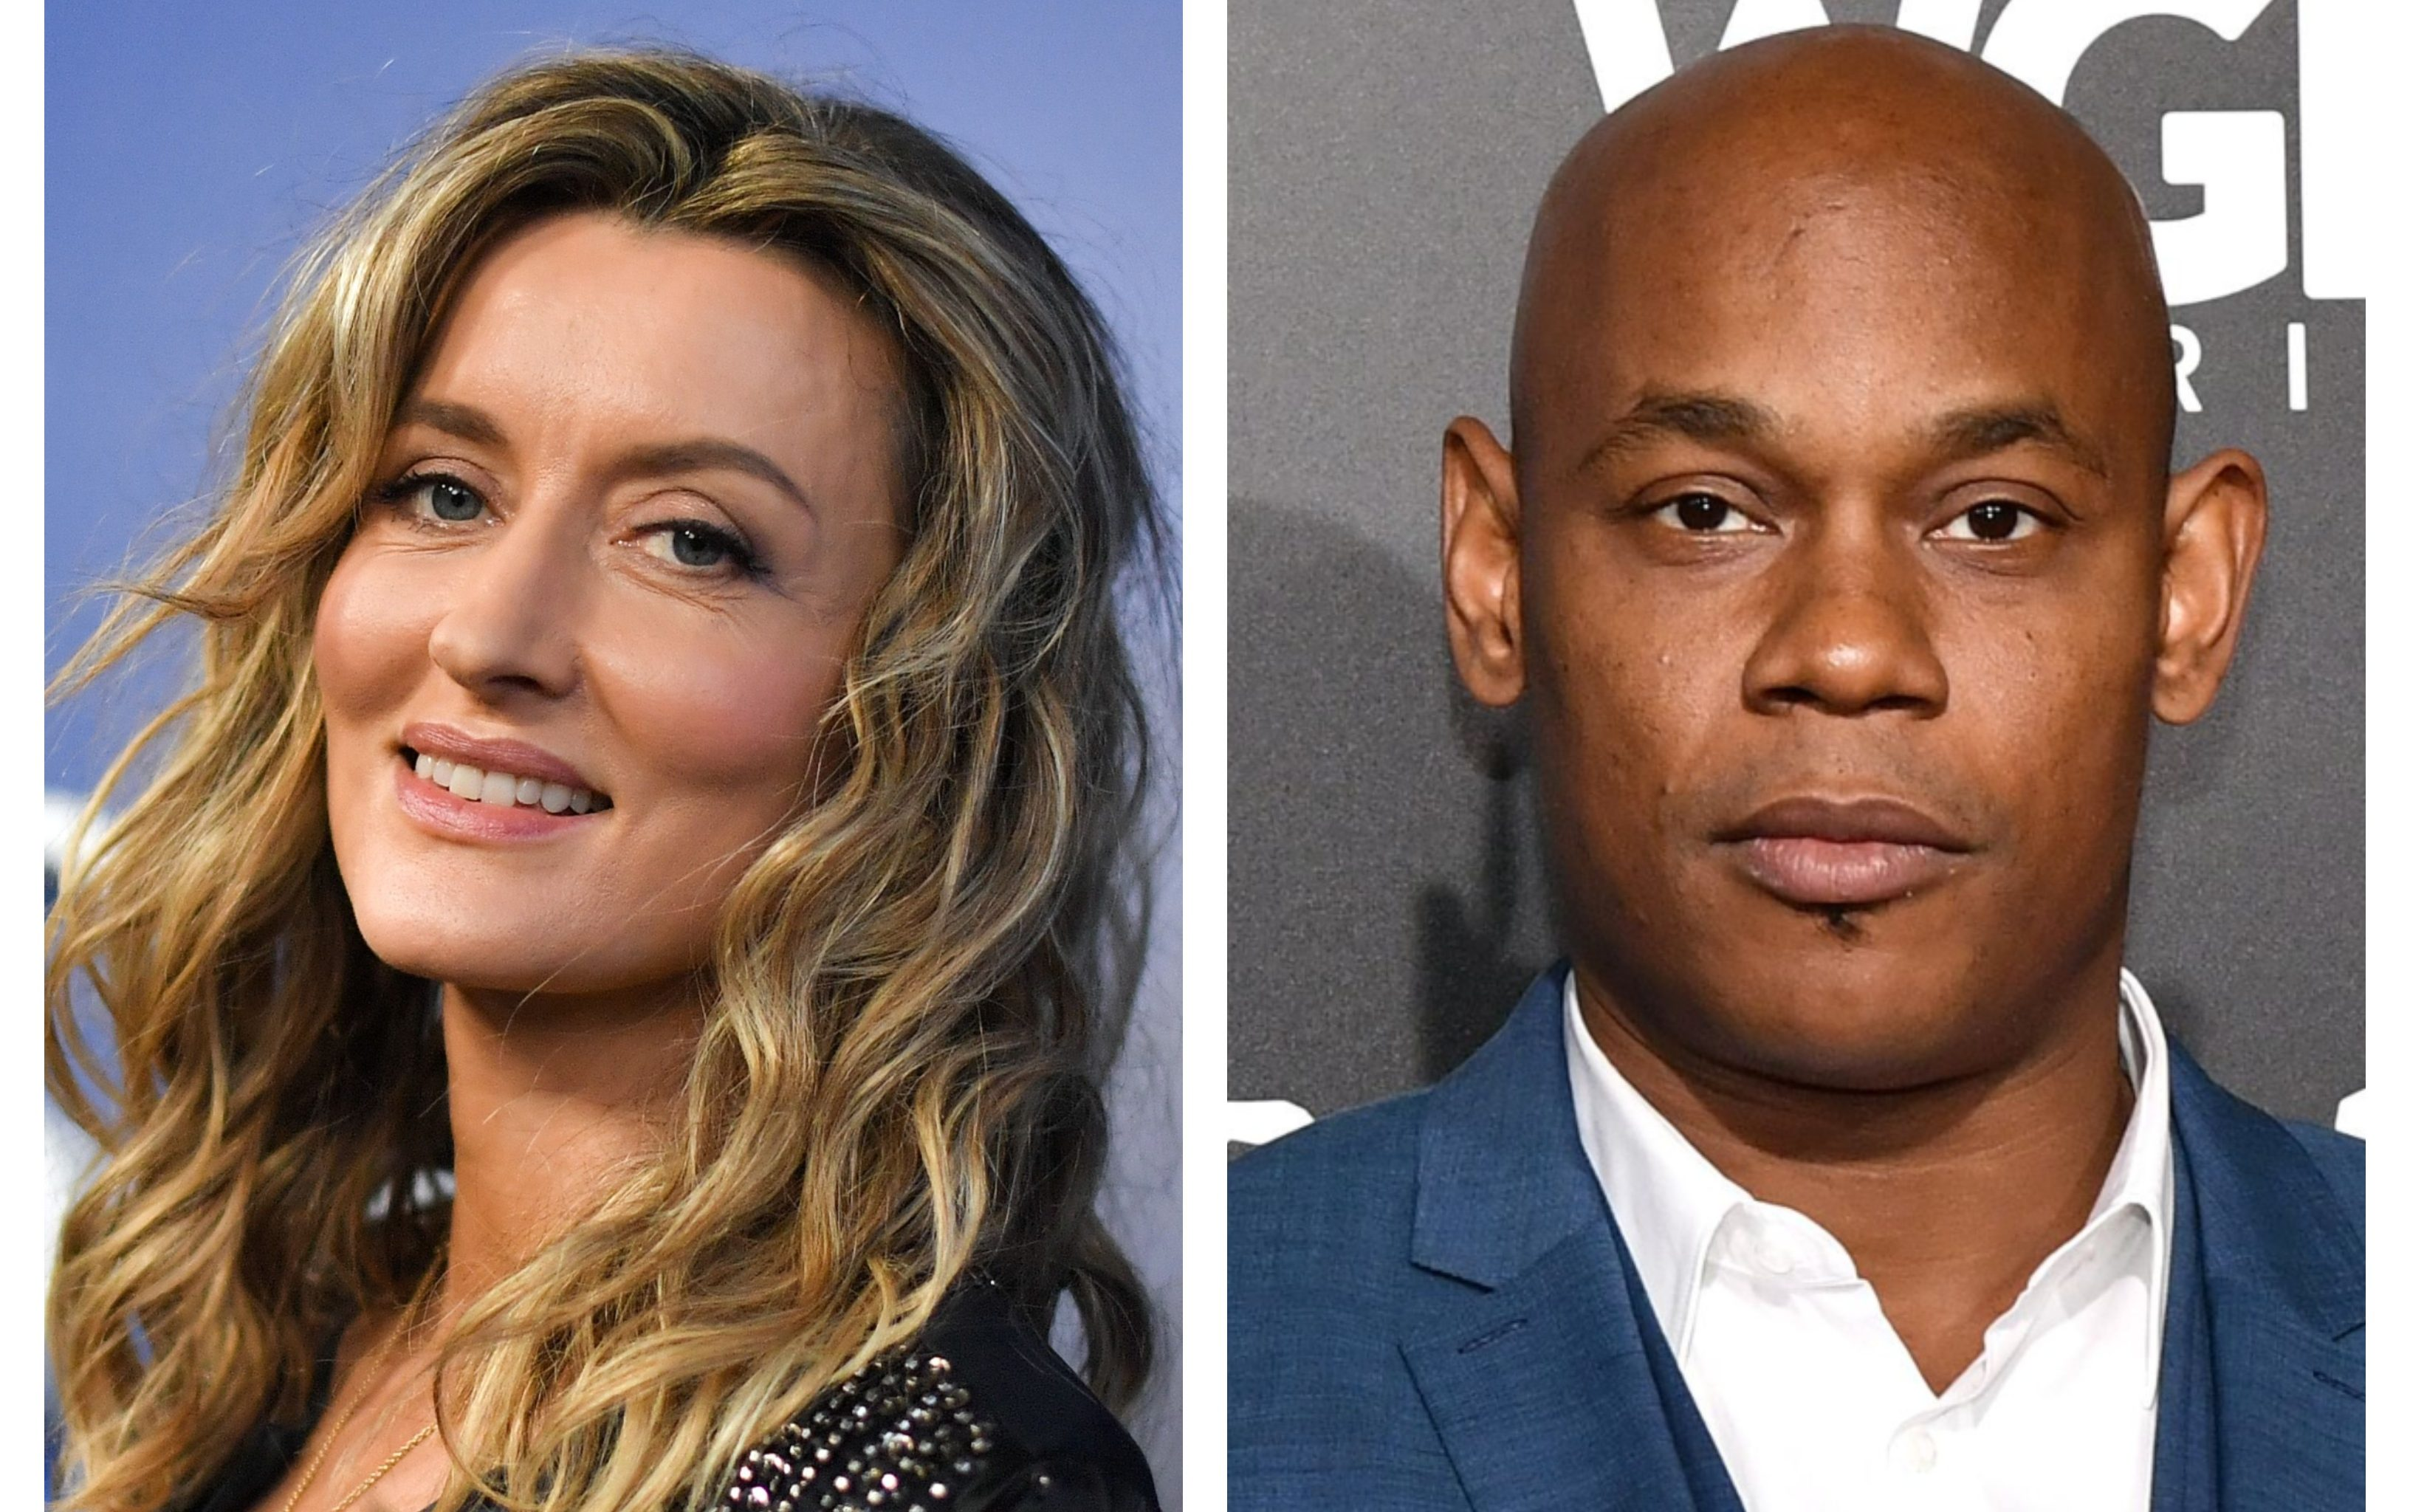 'Halo': Natascha McElhone and Bokeem Woodbine Among New Cast for Showtime TV Series